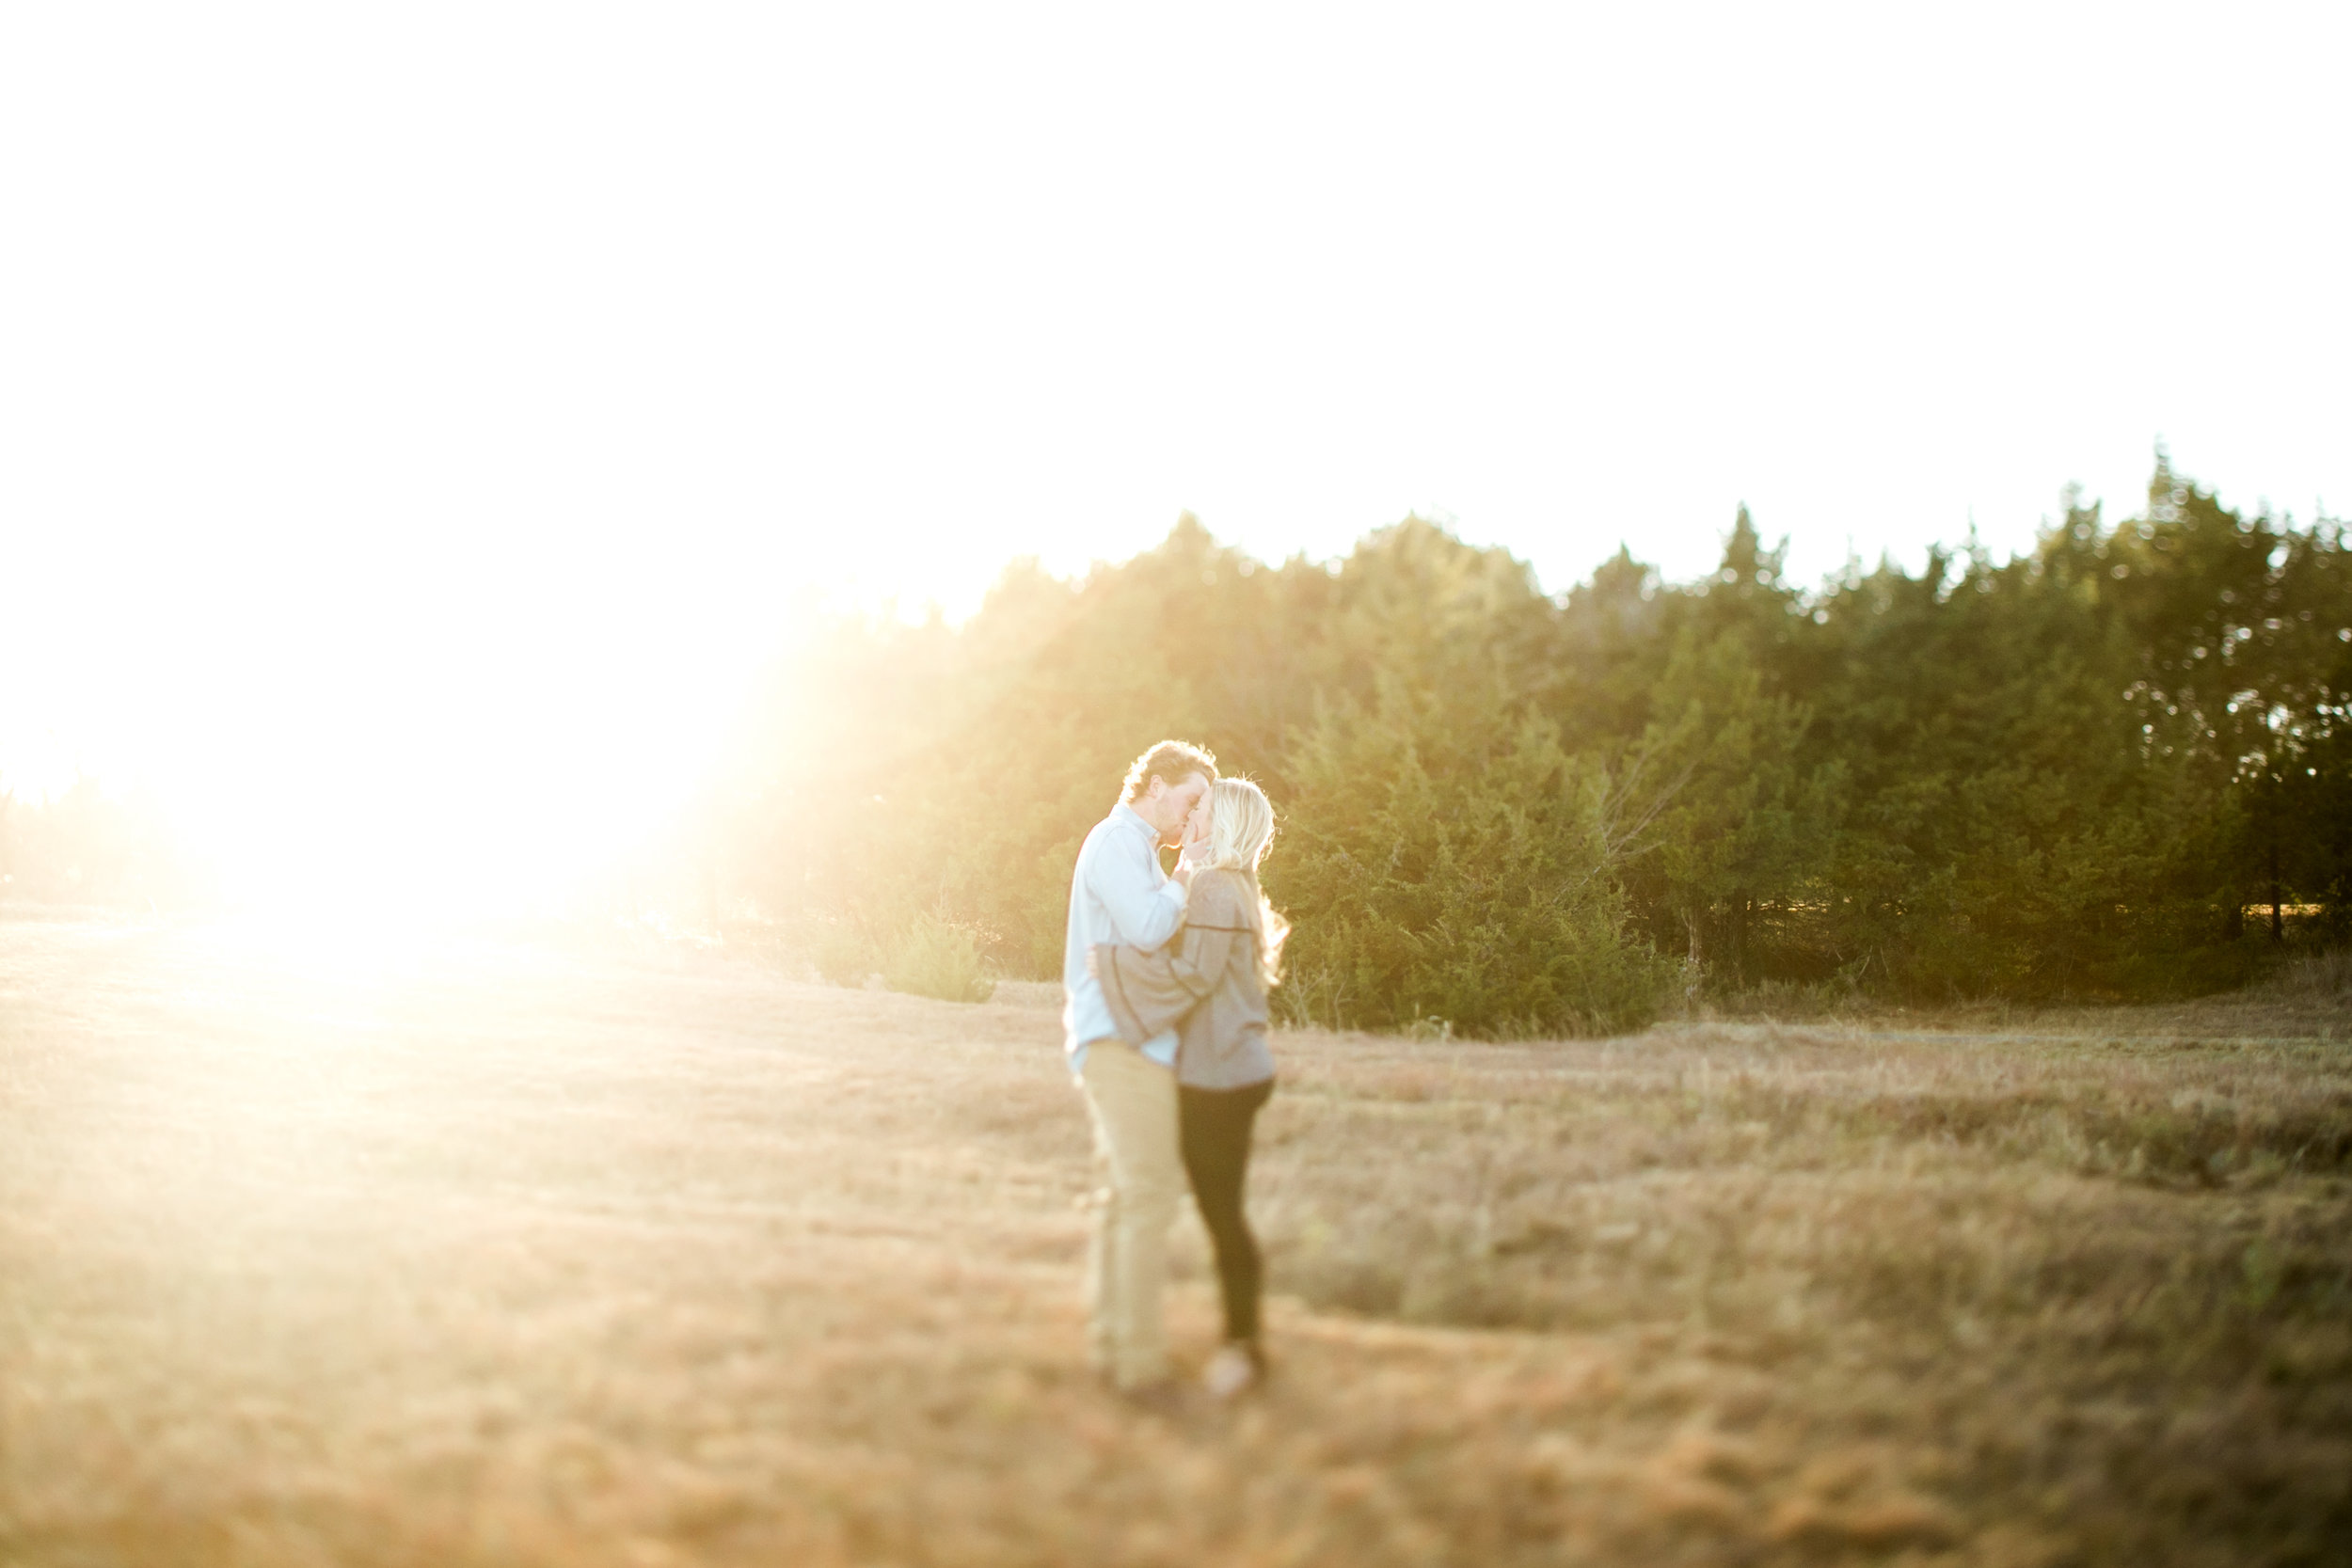 m-p-engagement-carsyn-abrams-photography-100.jpg